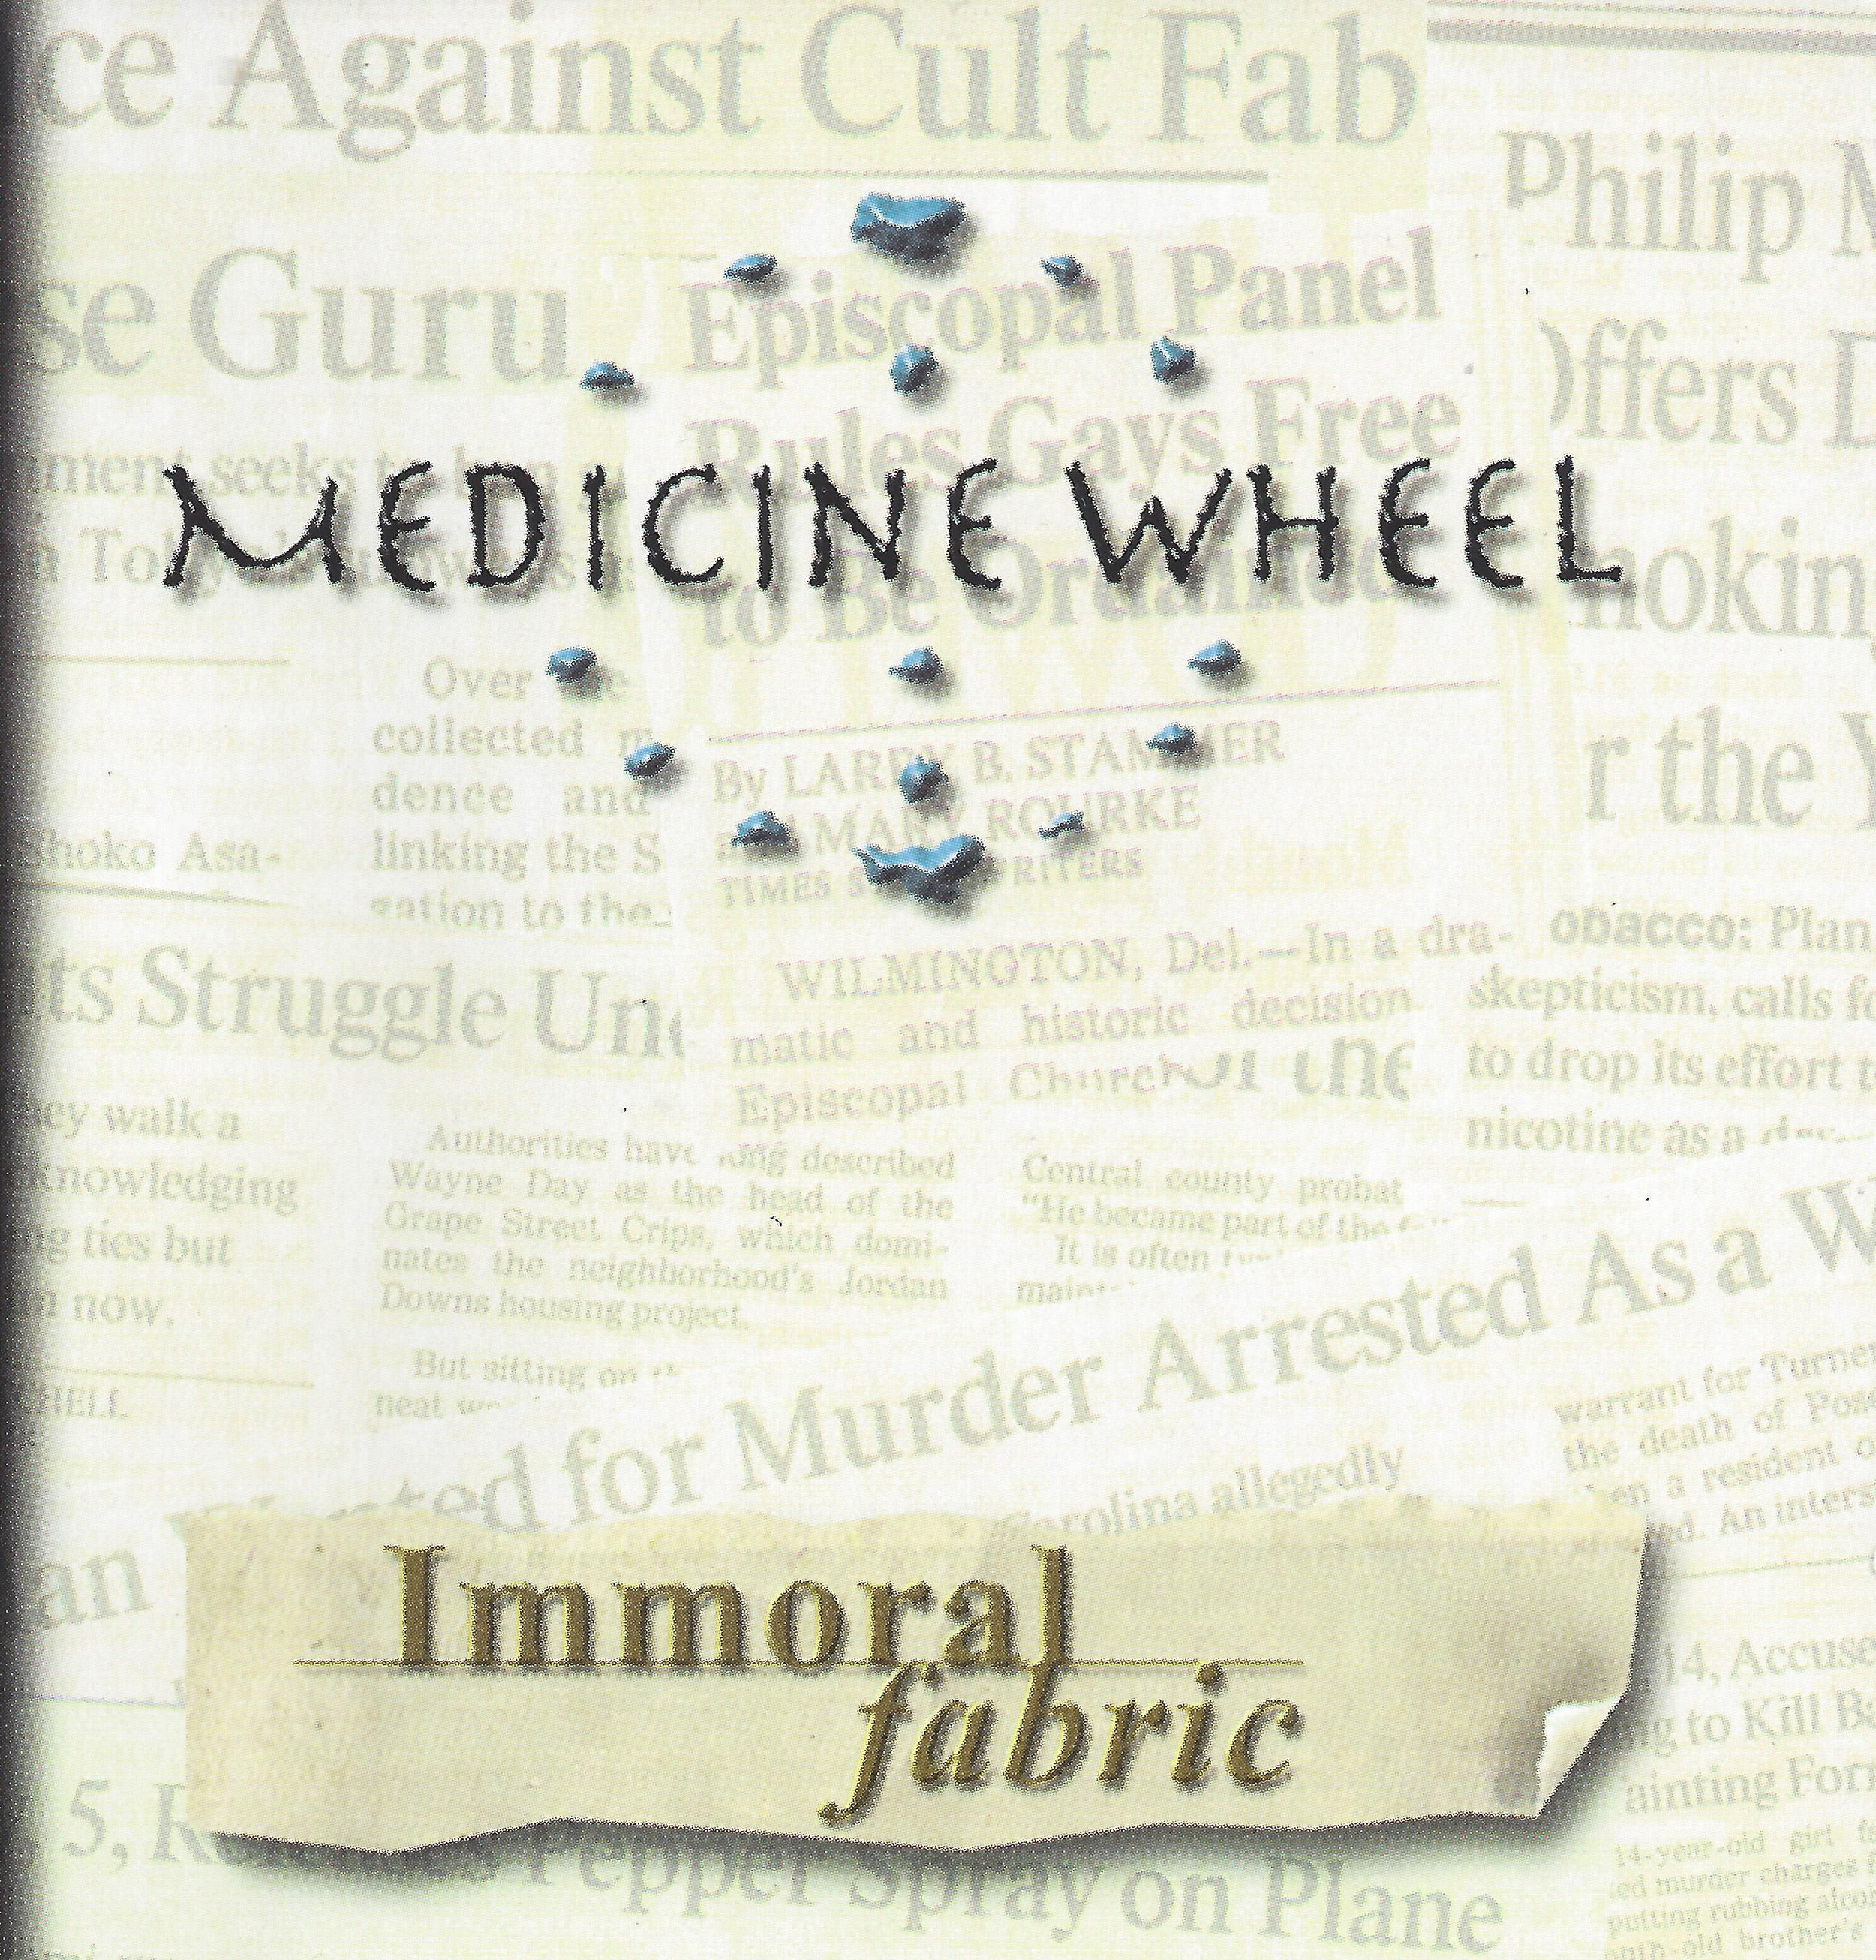 Medicine Wheel_Immoral Fabric.jpg